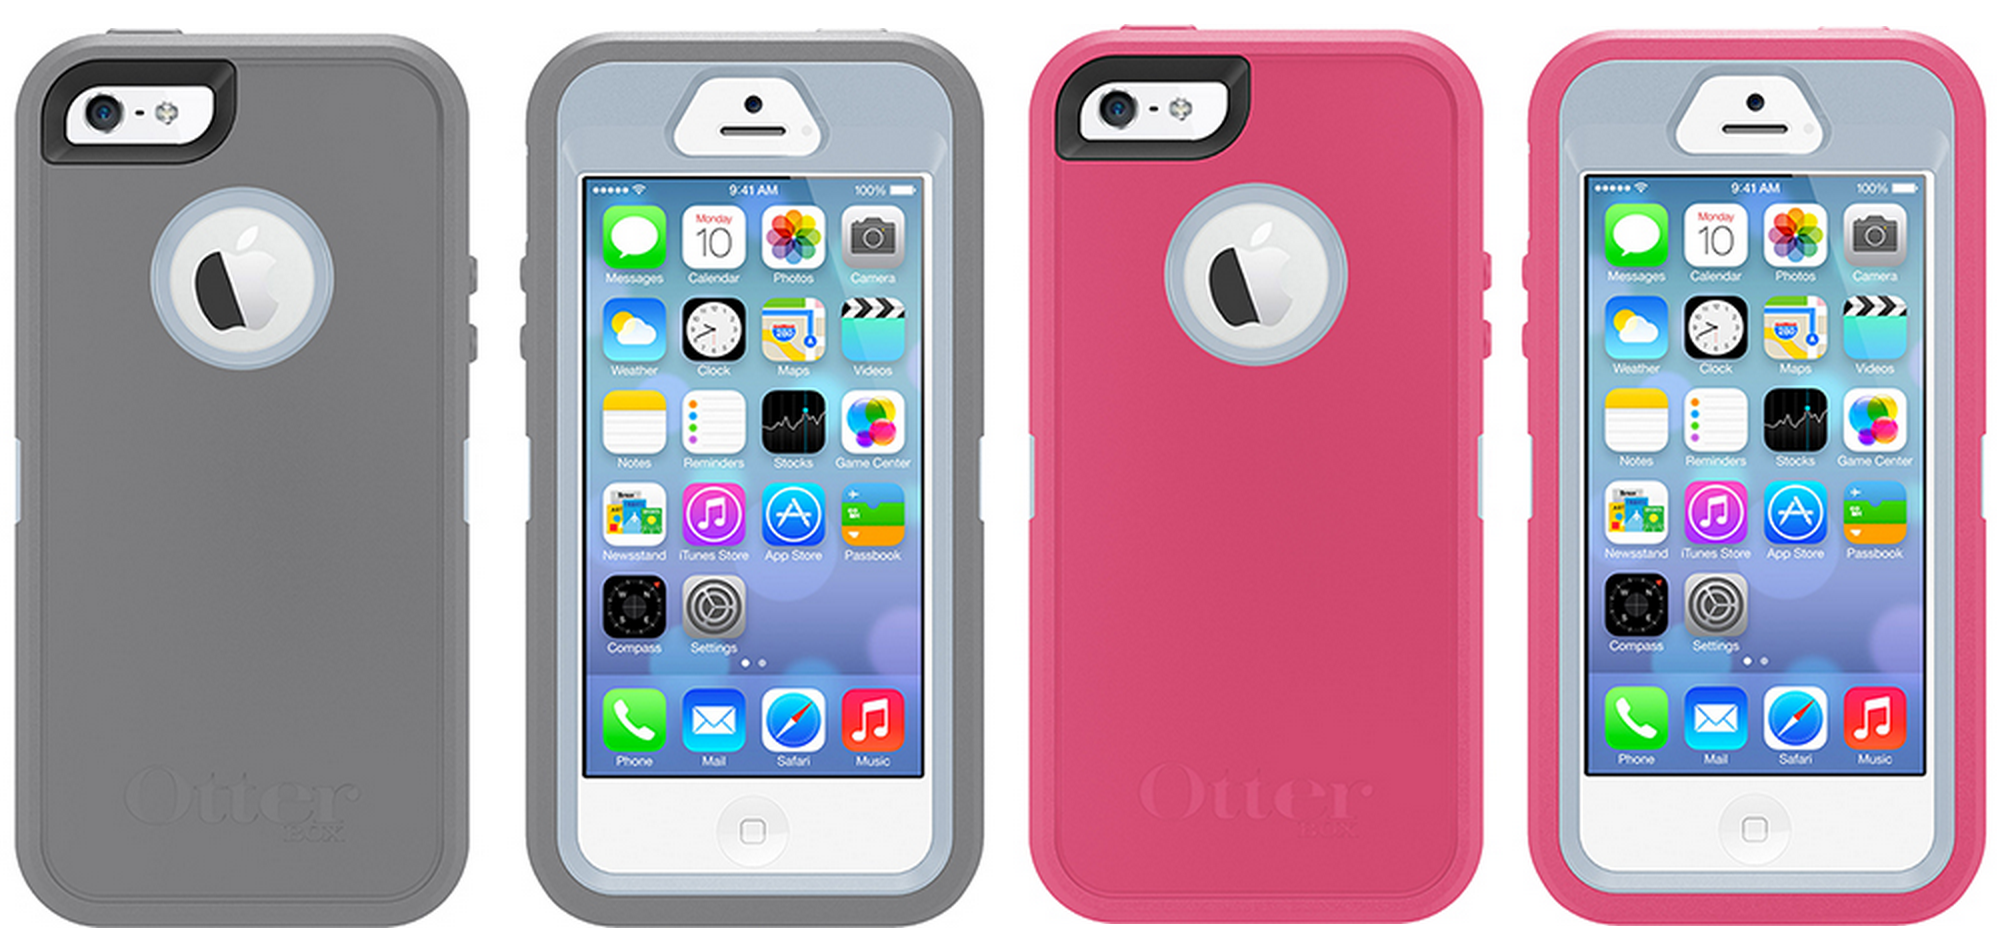 iphone cases 5s the best iphone 5c and iphone 5s cases already available 3560